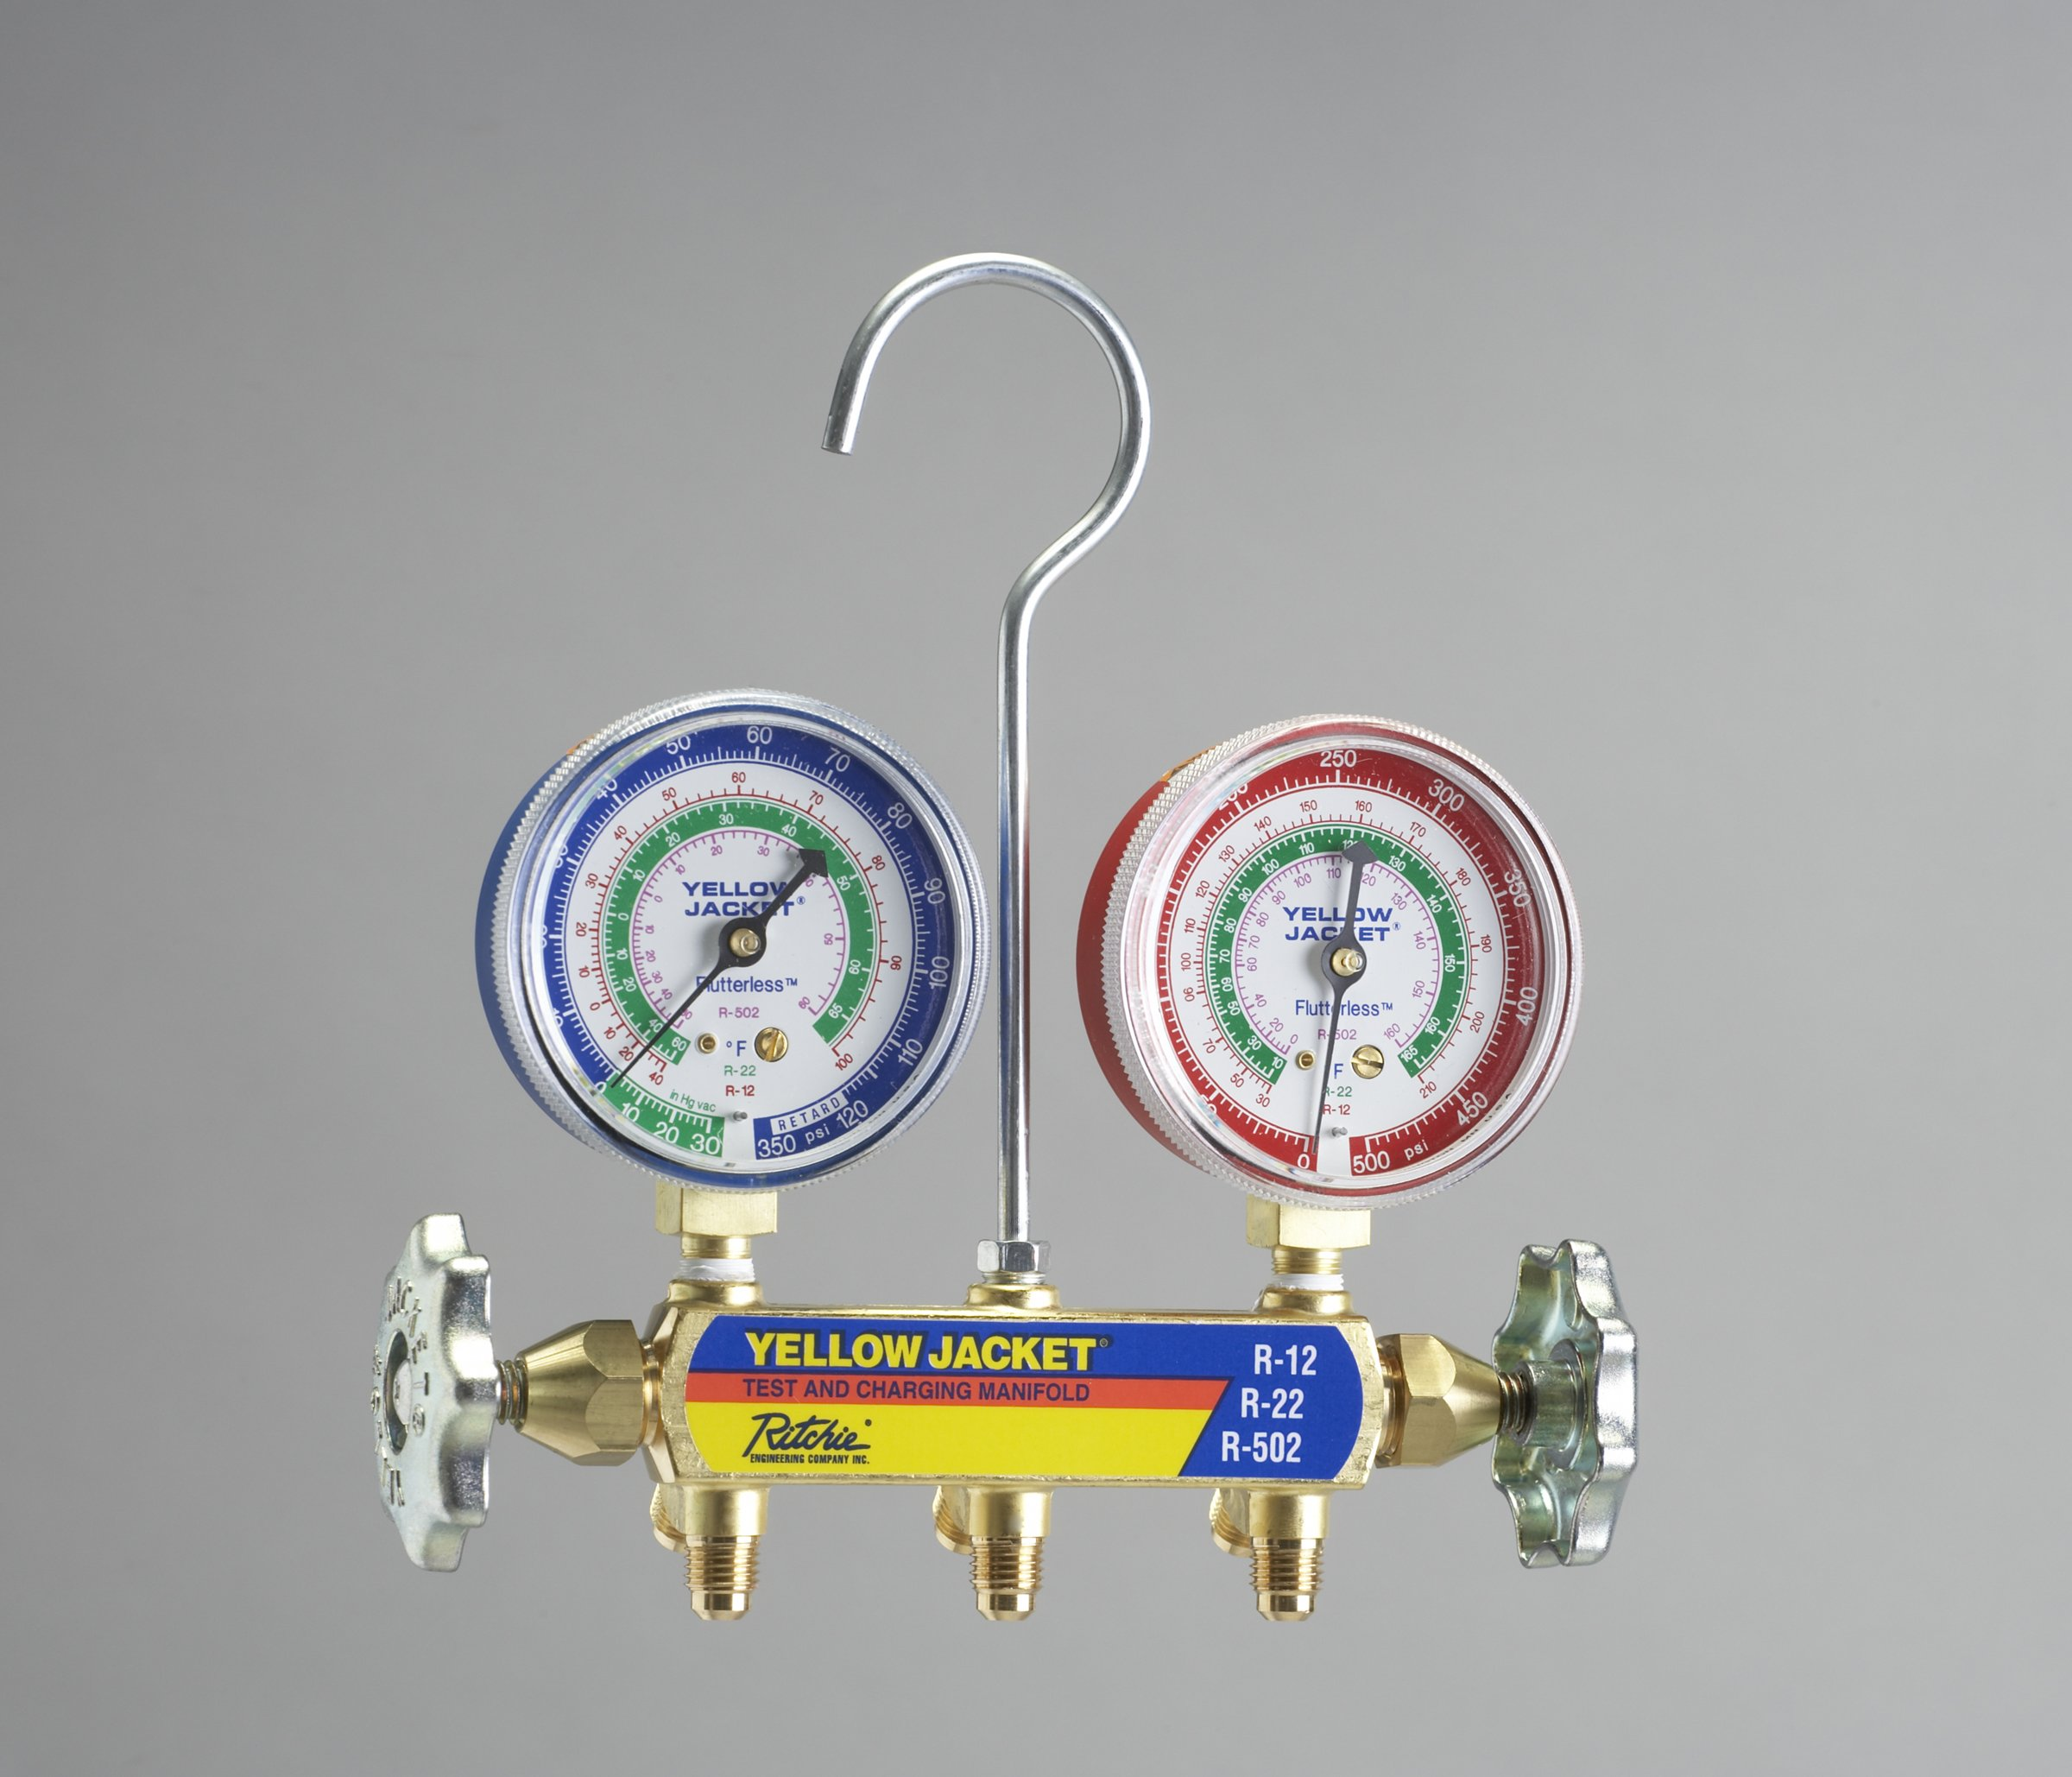 Ritchie Engineering Co., Inc. / YELLOW JACKET 41212 Red & blue gauges